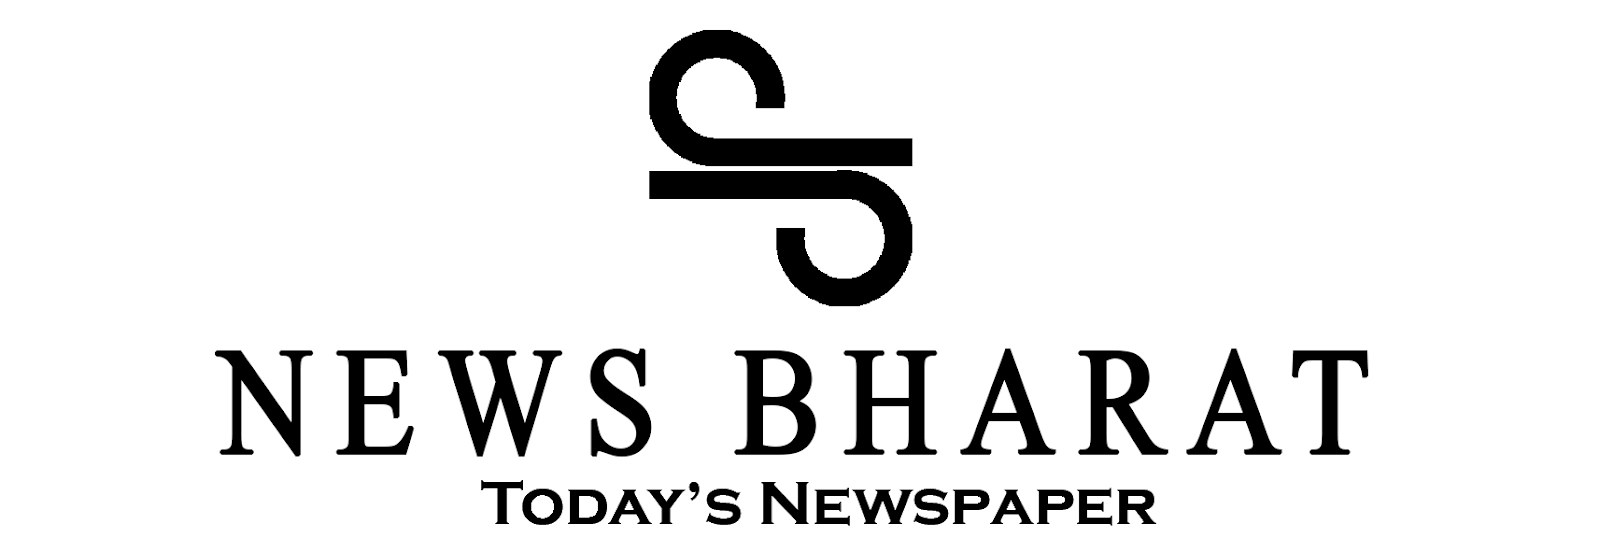 Newsbharat.in